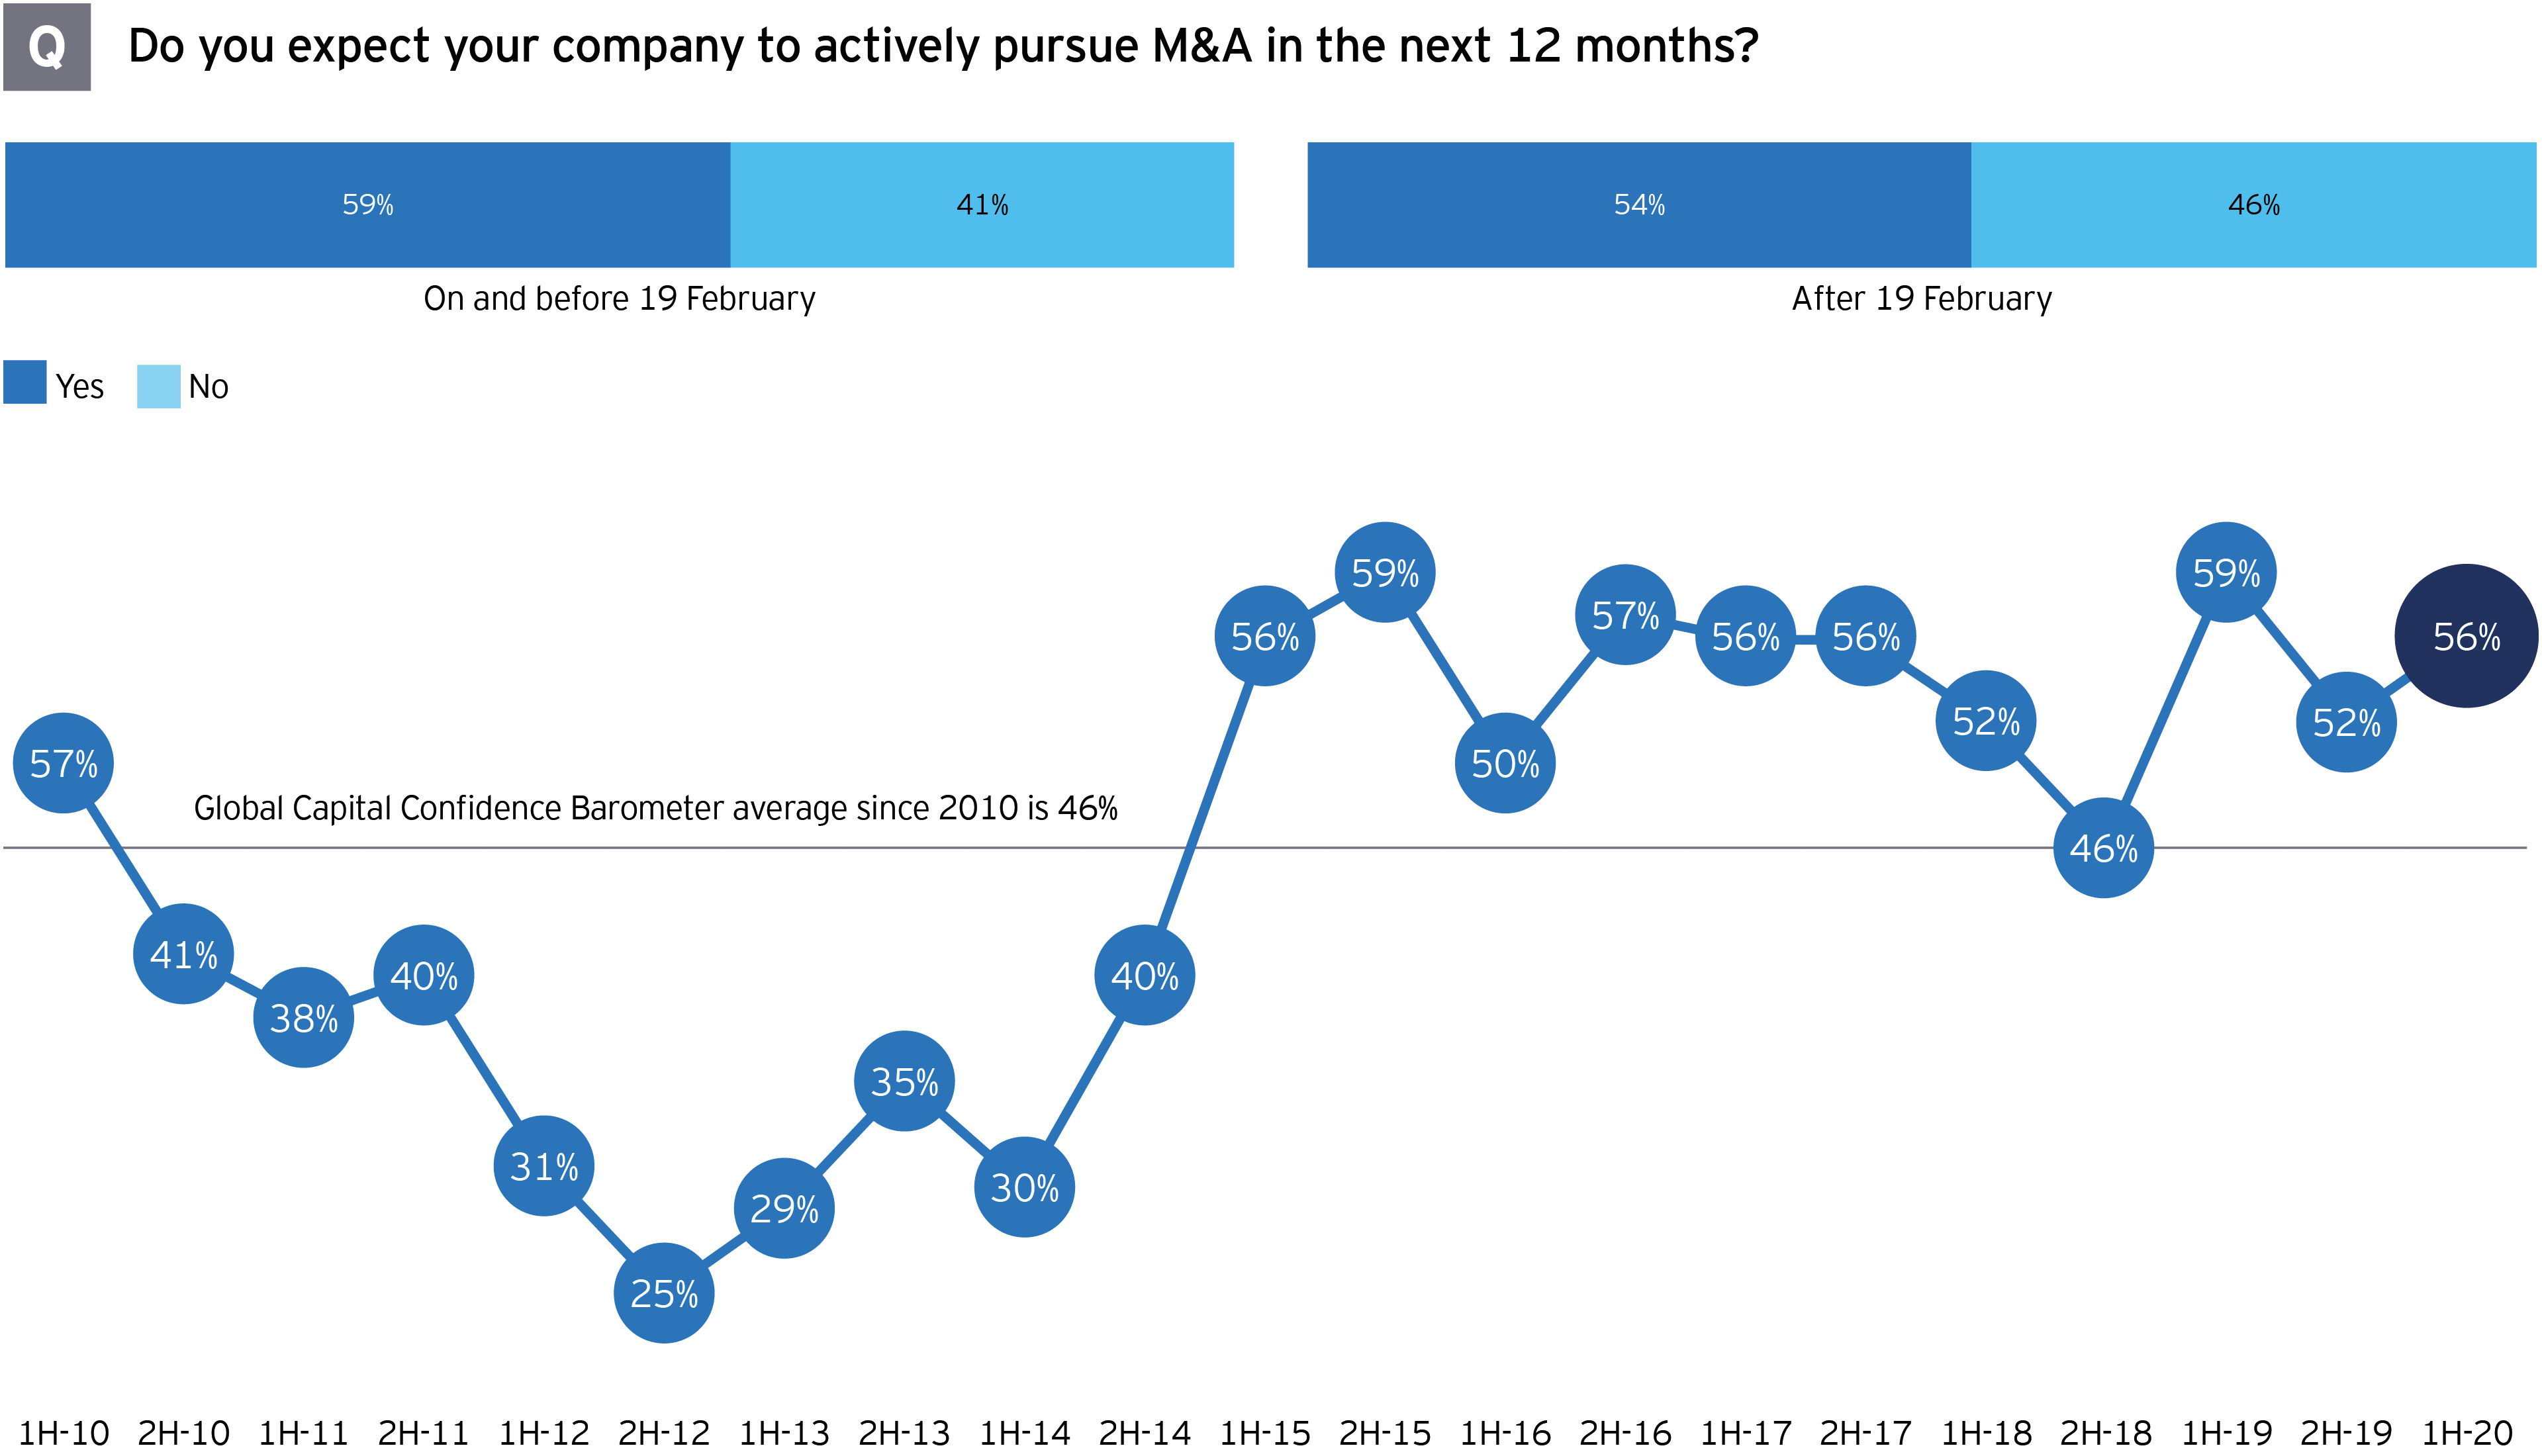 EY M&A survey expectations company actively pursue M&A in next 12 months